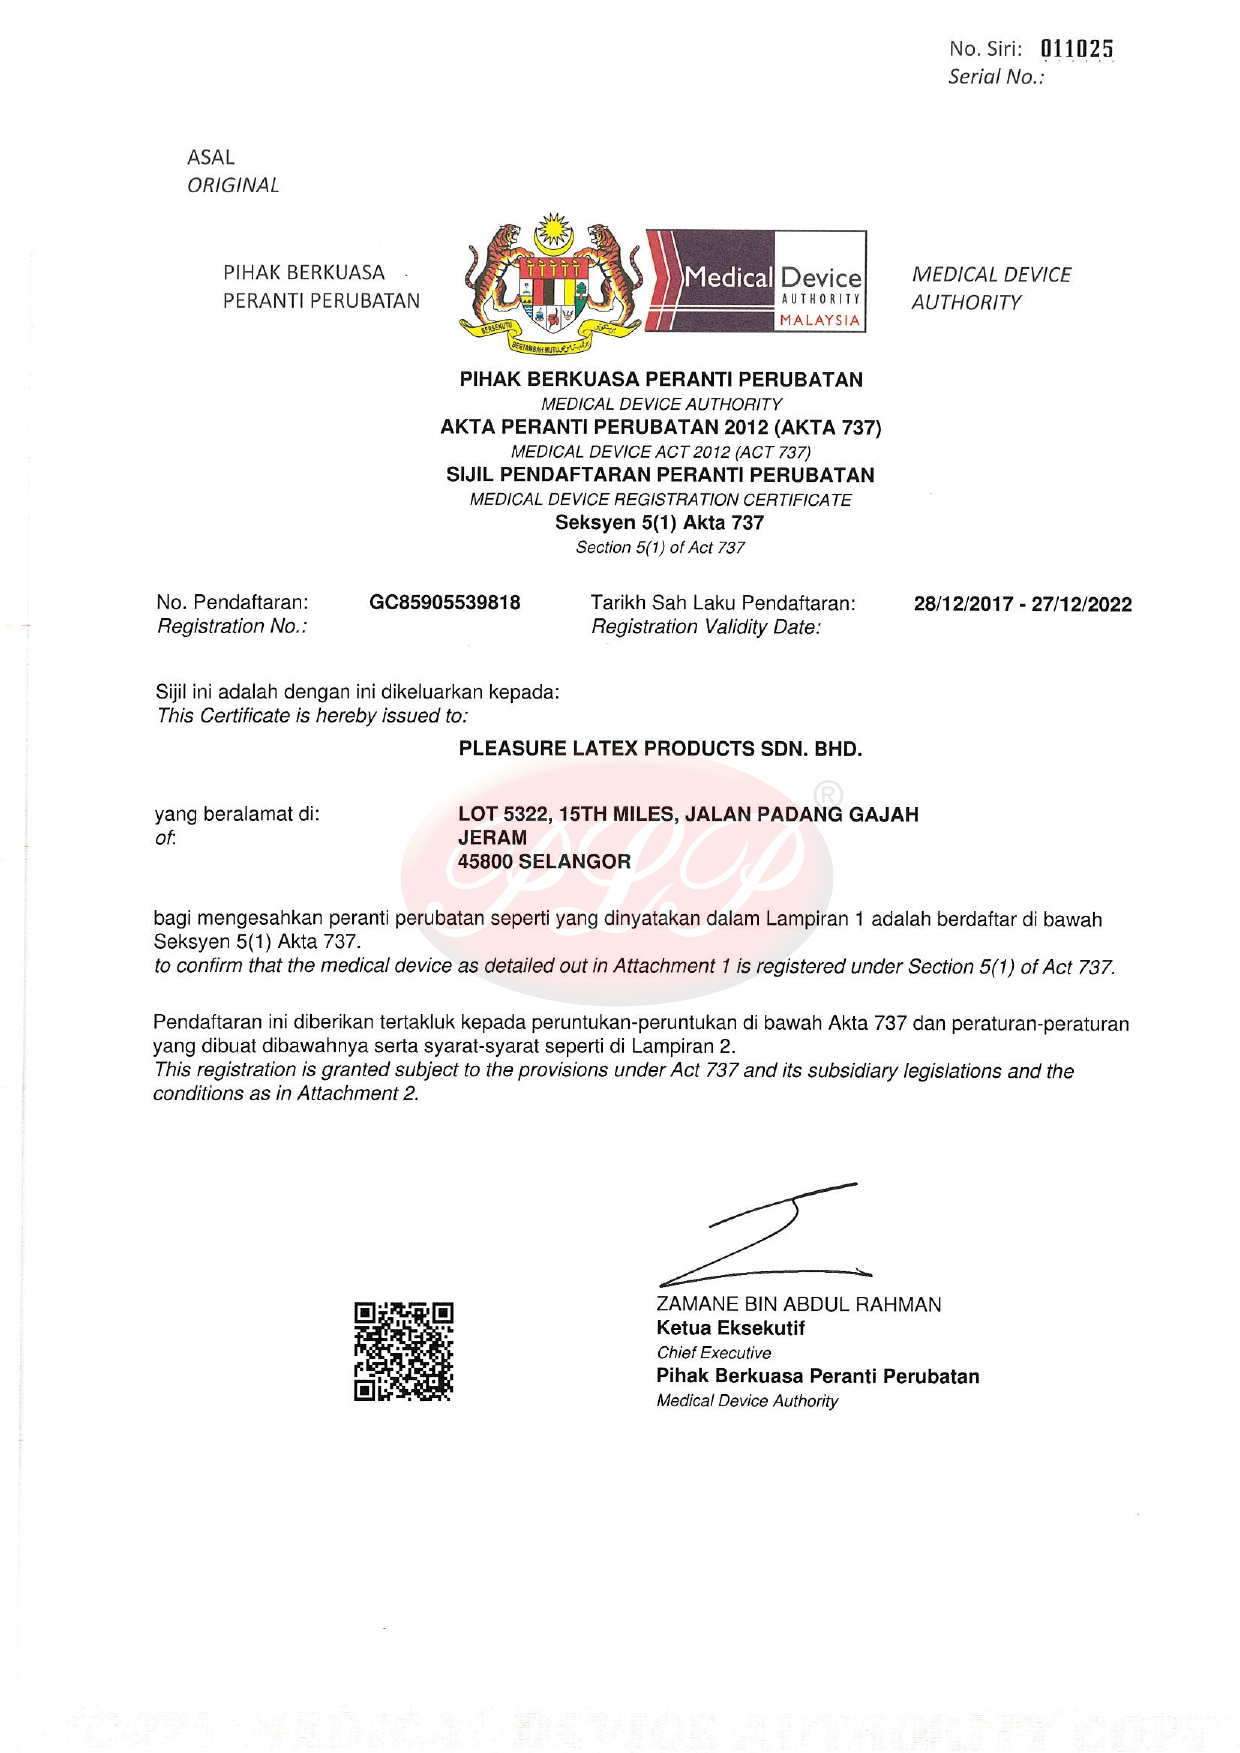 Malaysia MDA Registration Certificate - Cheers Brand